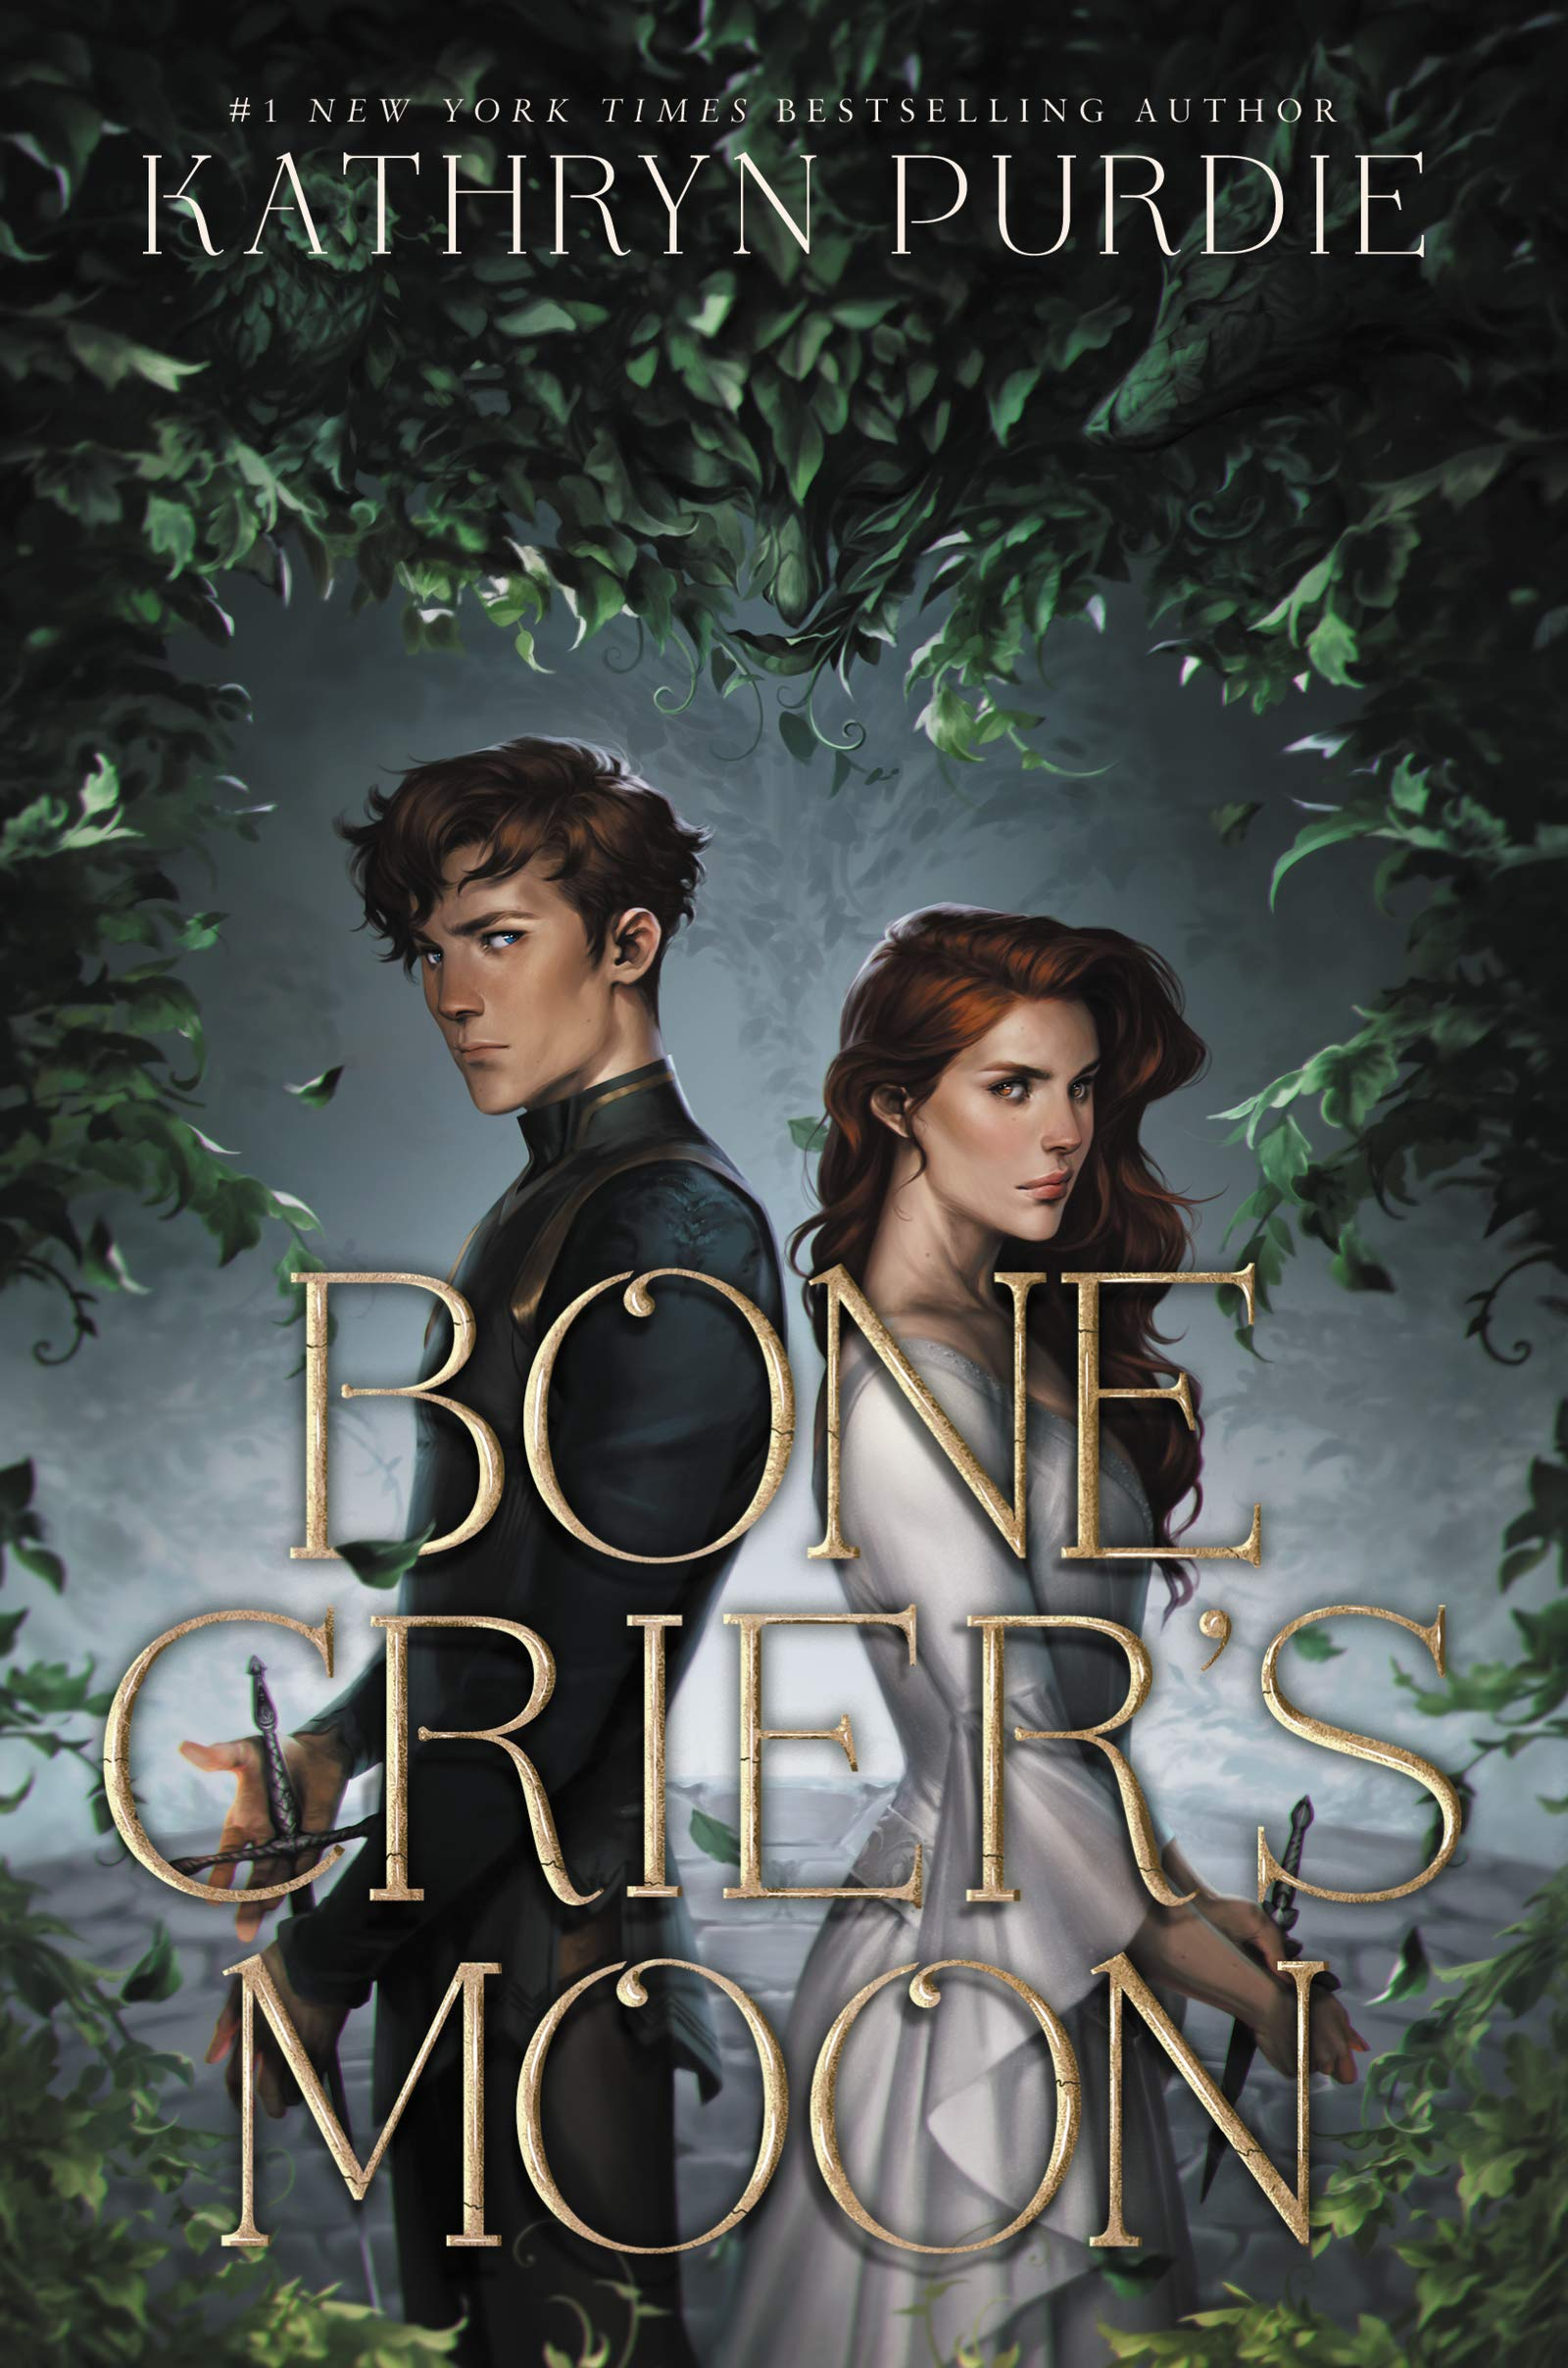 Image result for bone crier's moon